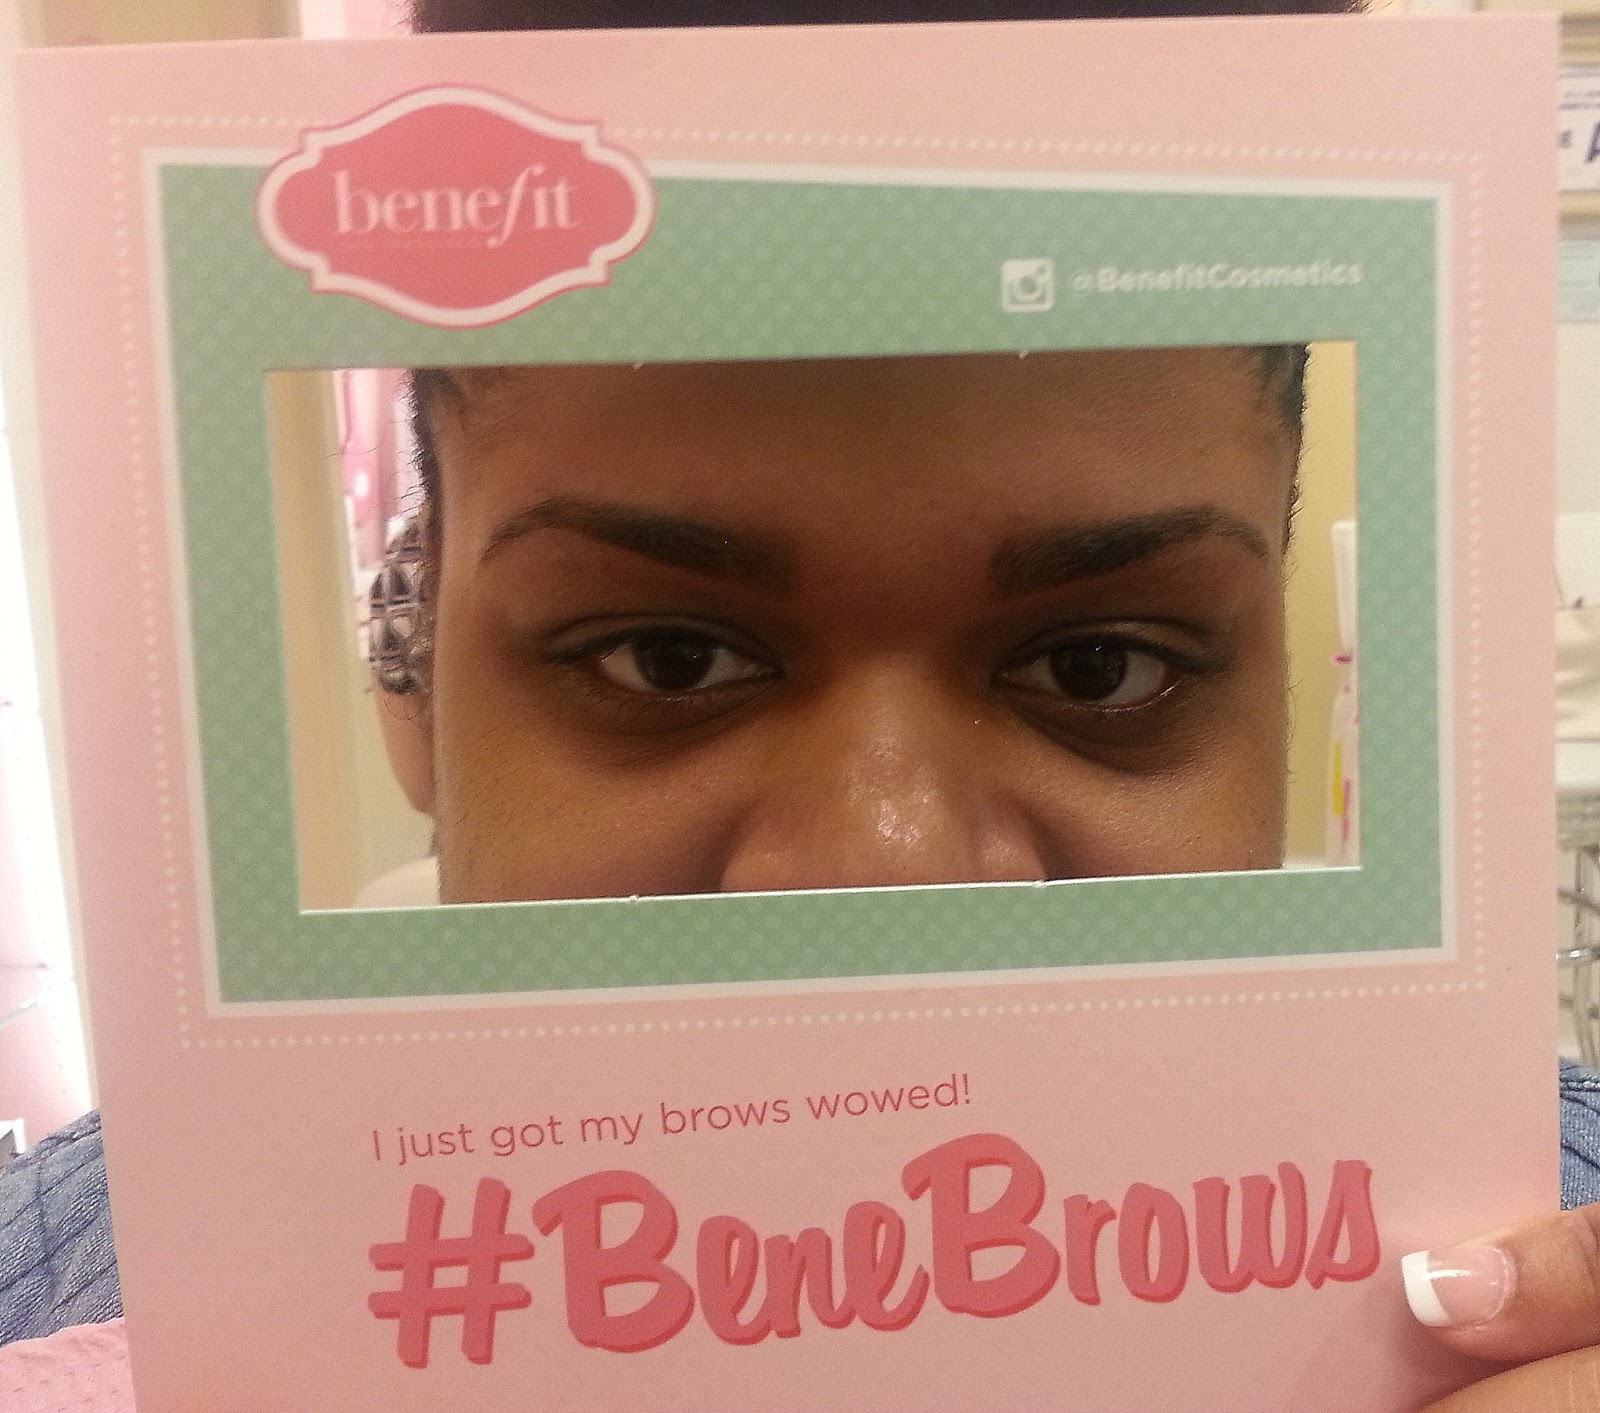 Beauty Benefit Cosmetics Brow Bar Brow Tinting Experience Fabellis